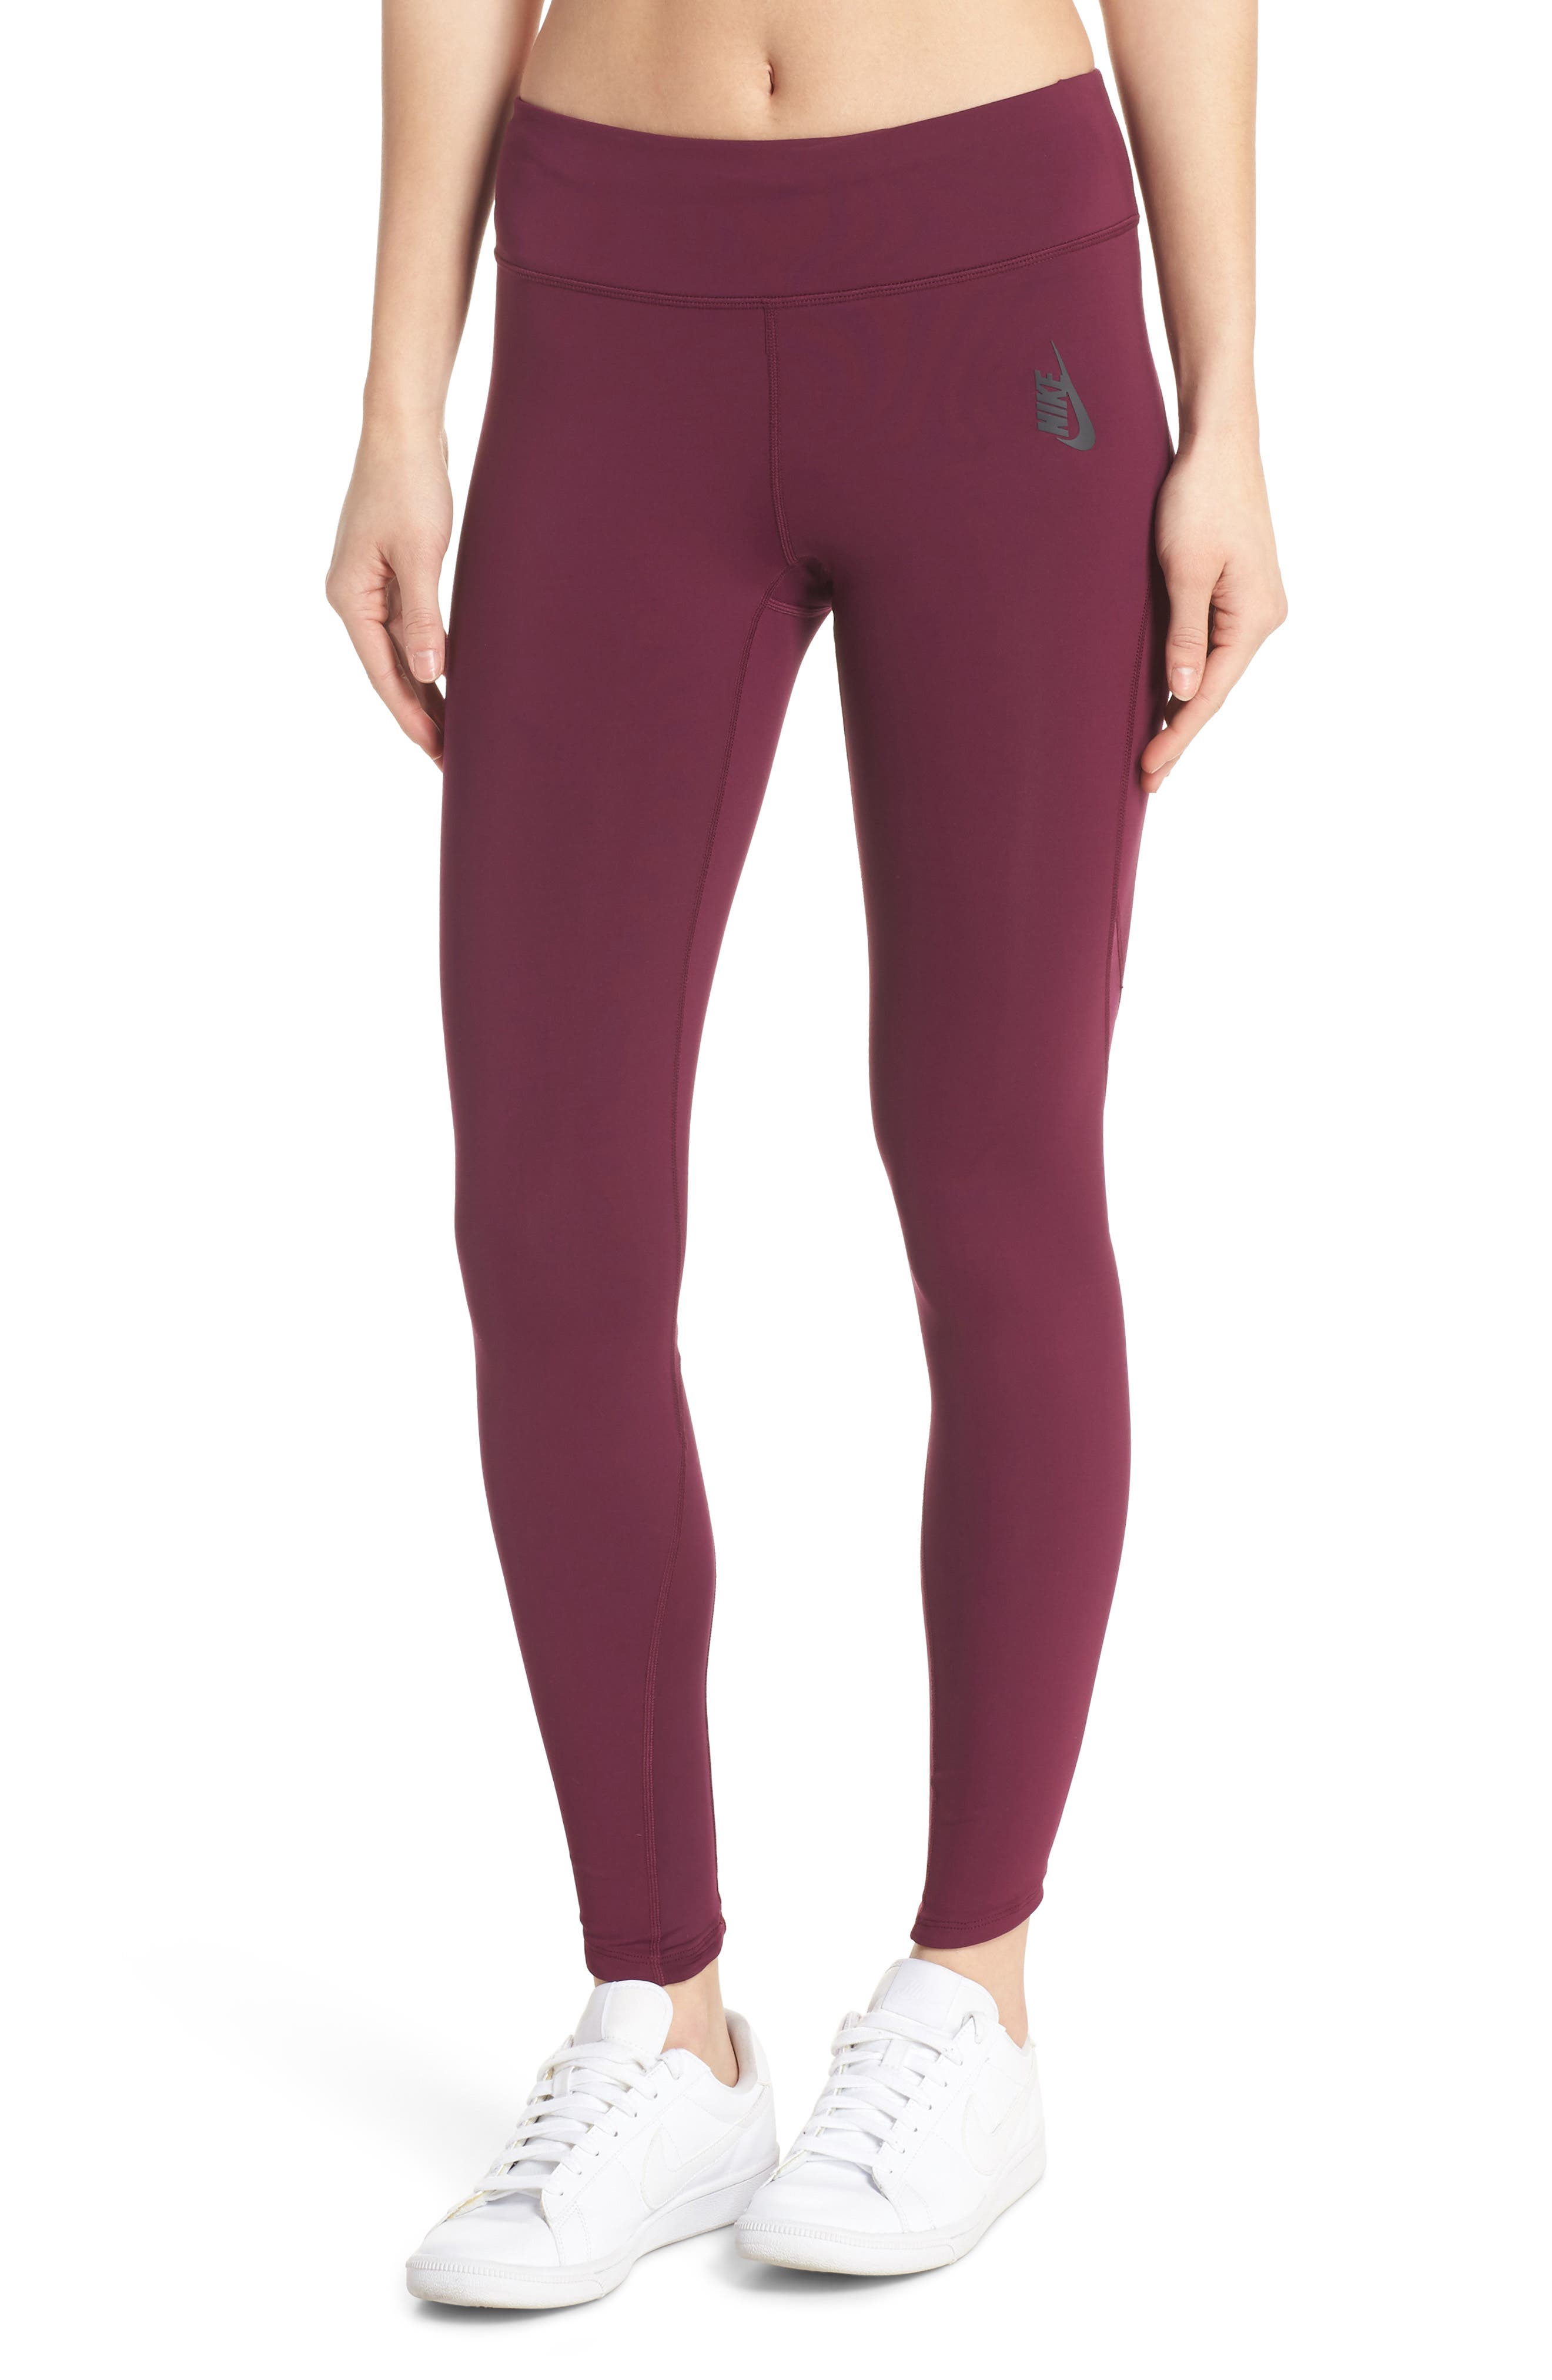 NikeLab Collection Dri-FIT Women's Tights,                         Main,                         color, Bordeaux